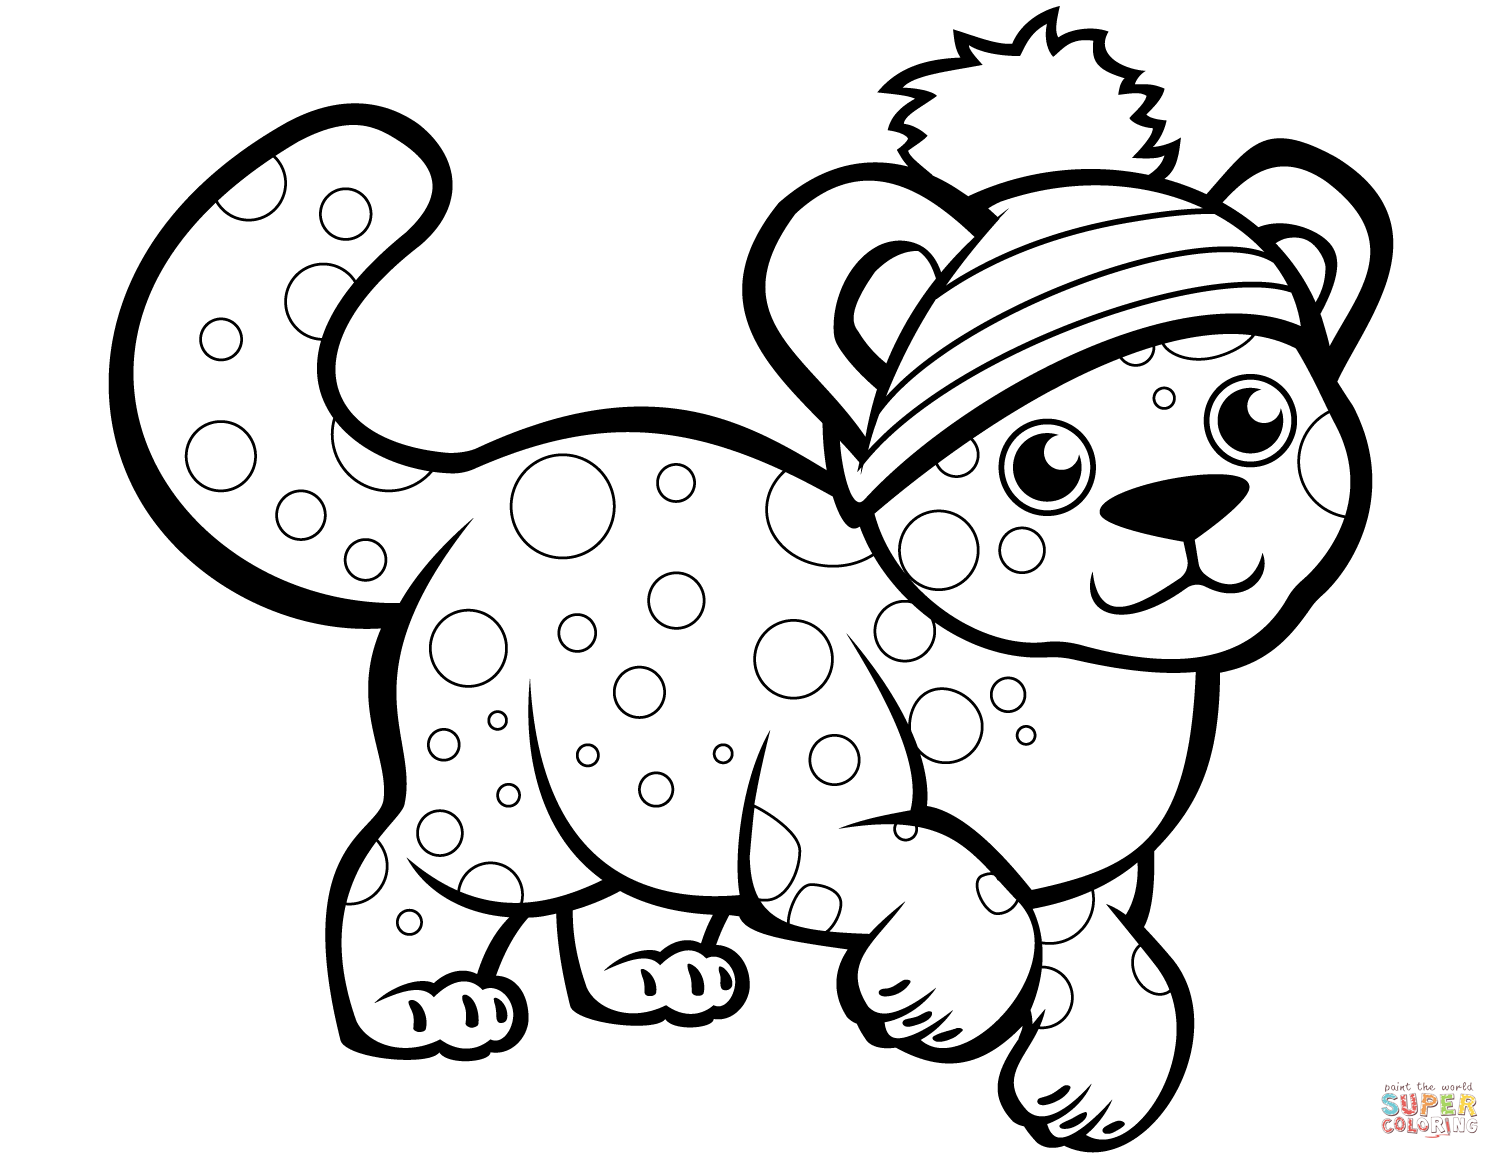 coloring pictures of cheetahs printable cheetah coloring pages for kids cool2bkids of pictures cheetahs coloring